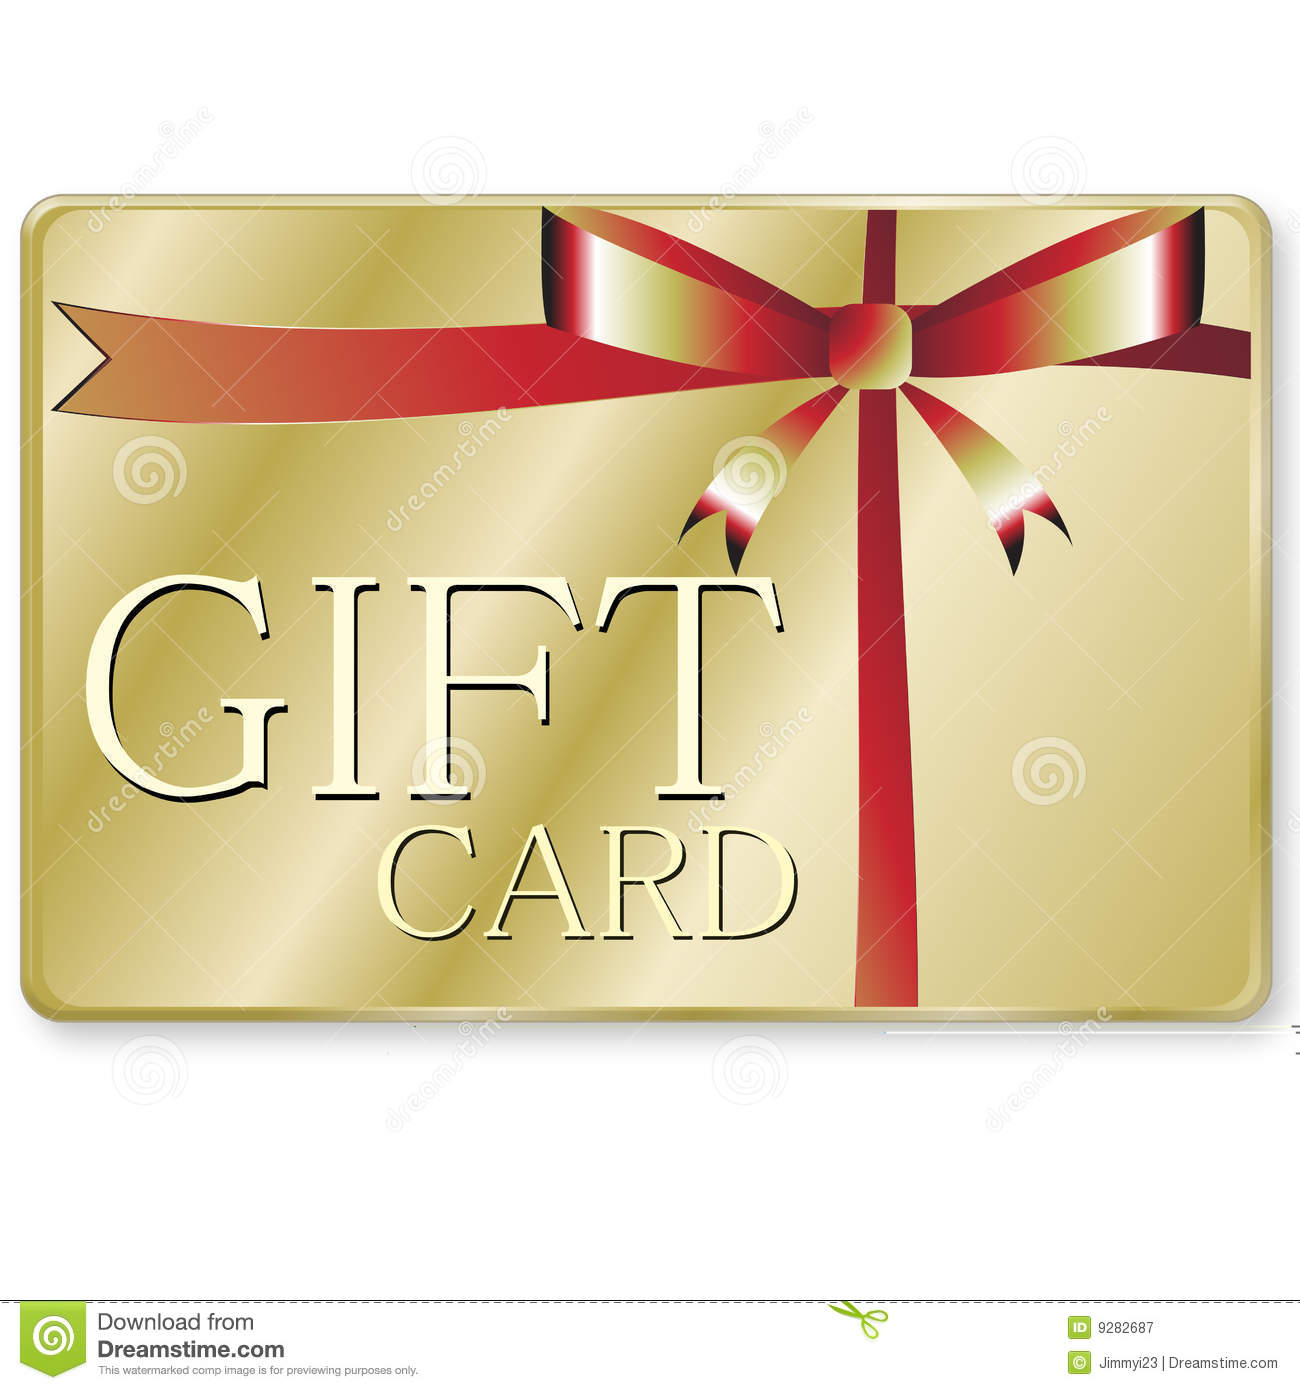 Gift Card Royalty Free Stock Photography - Image: 9282687